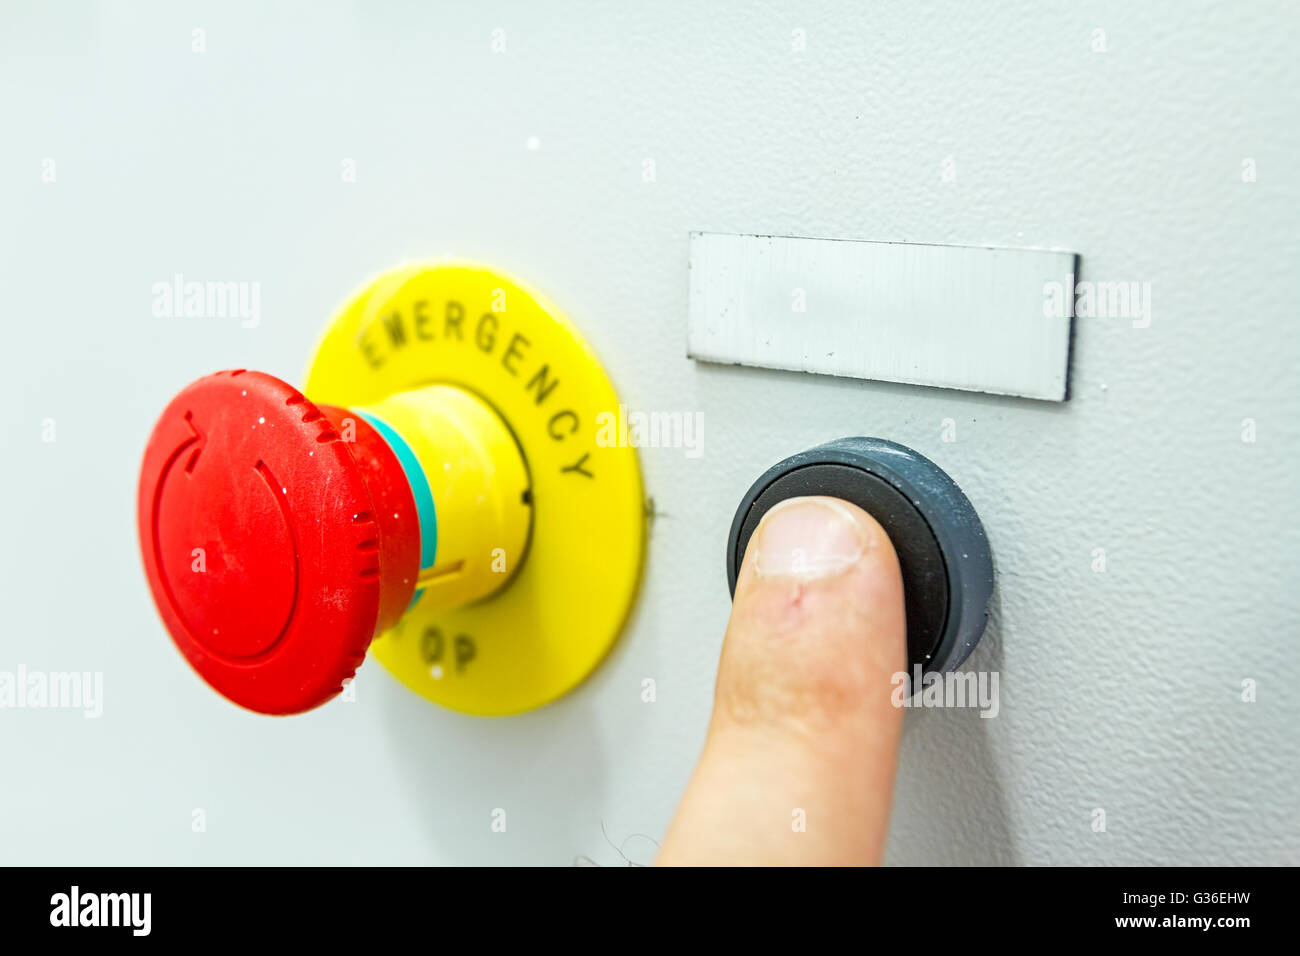 hight resolution of reset fuse box with emergency red shutdown panic button stockreset fuse box with emergency